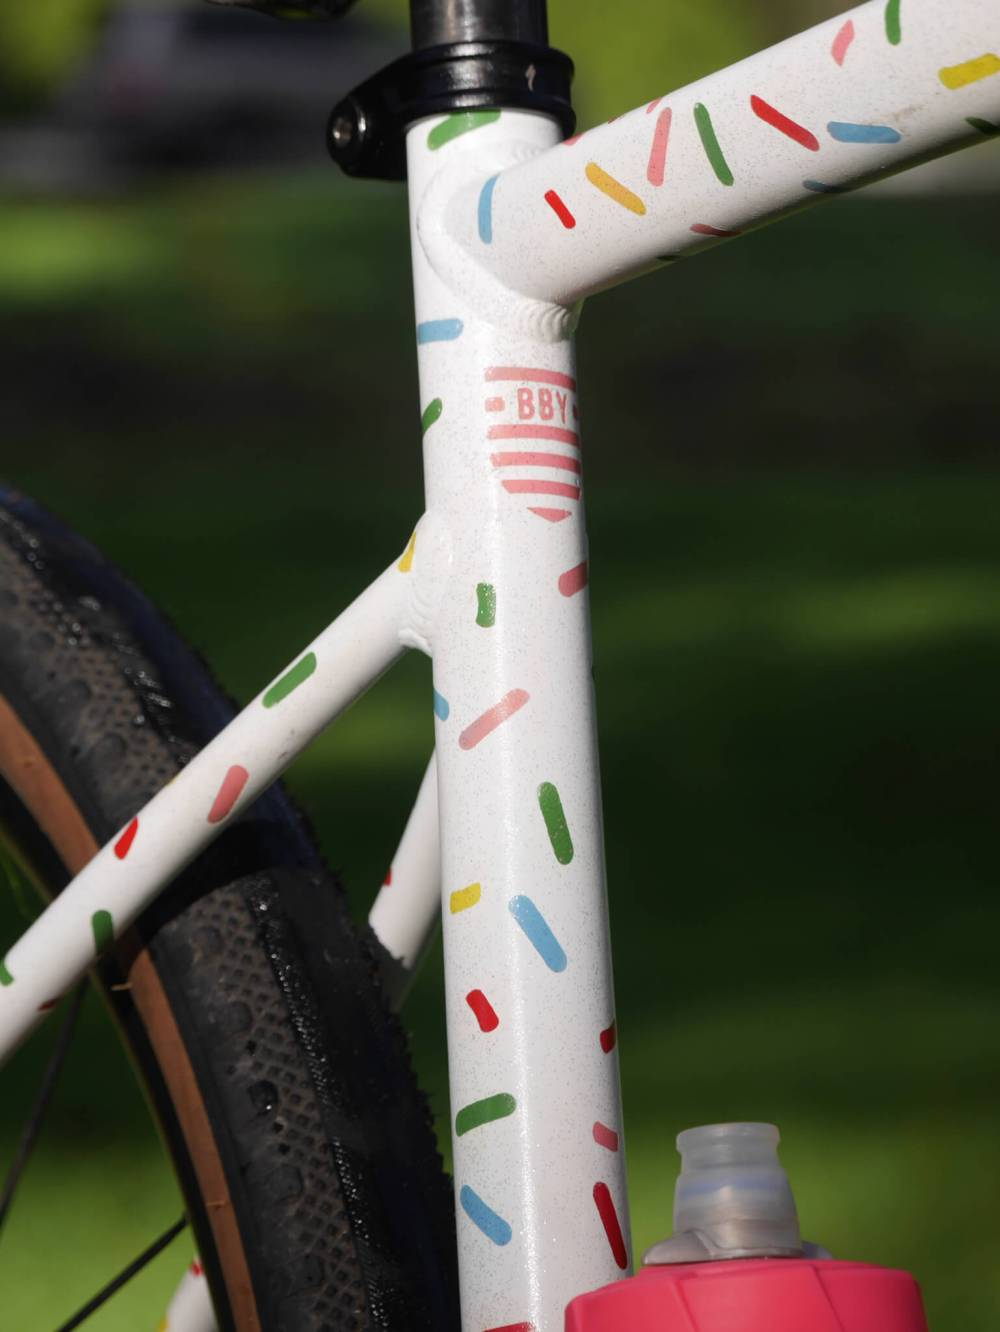 Close-up of logo on painted bike frame